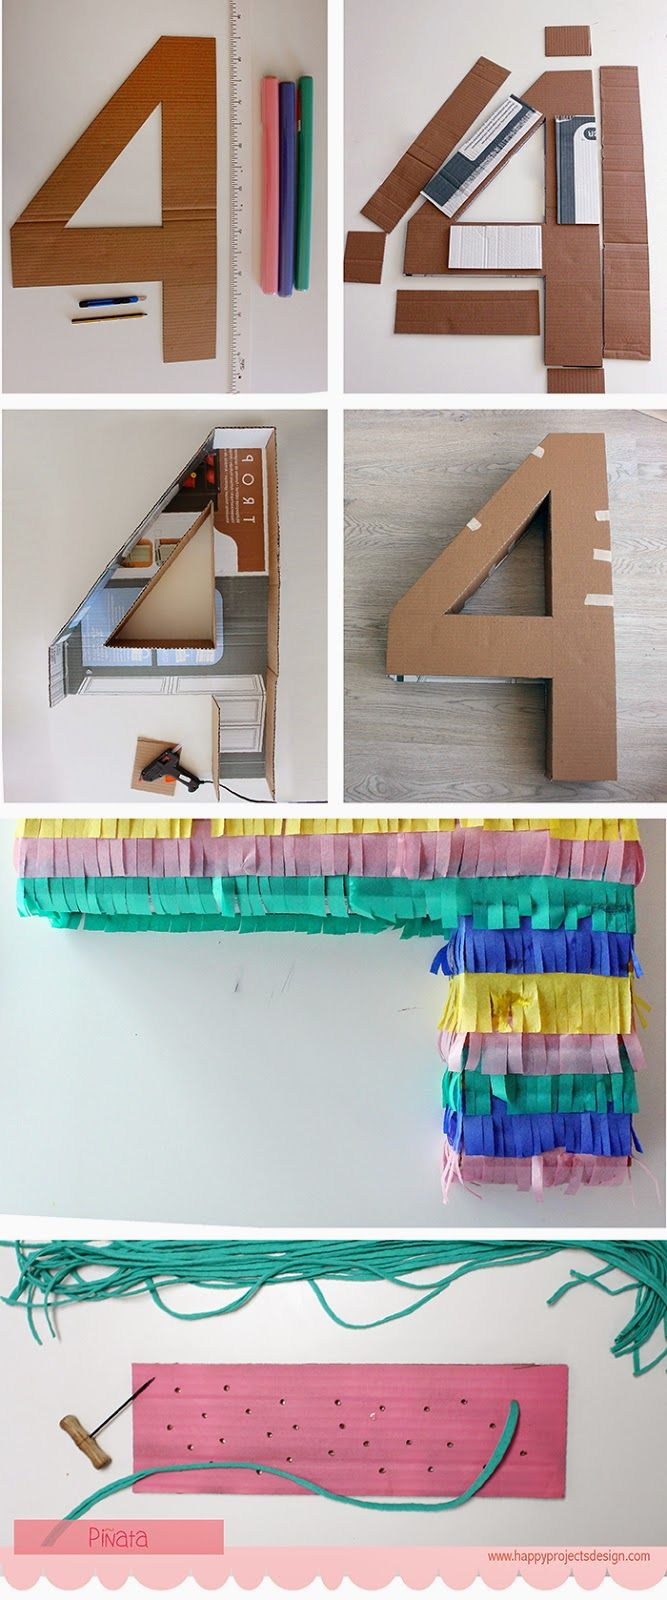 happyprojectsdesign: Carla Cumple 4